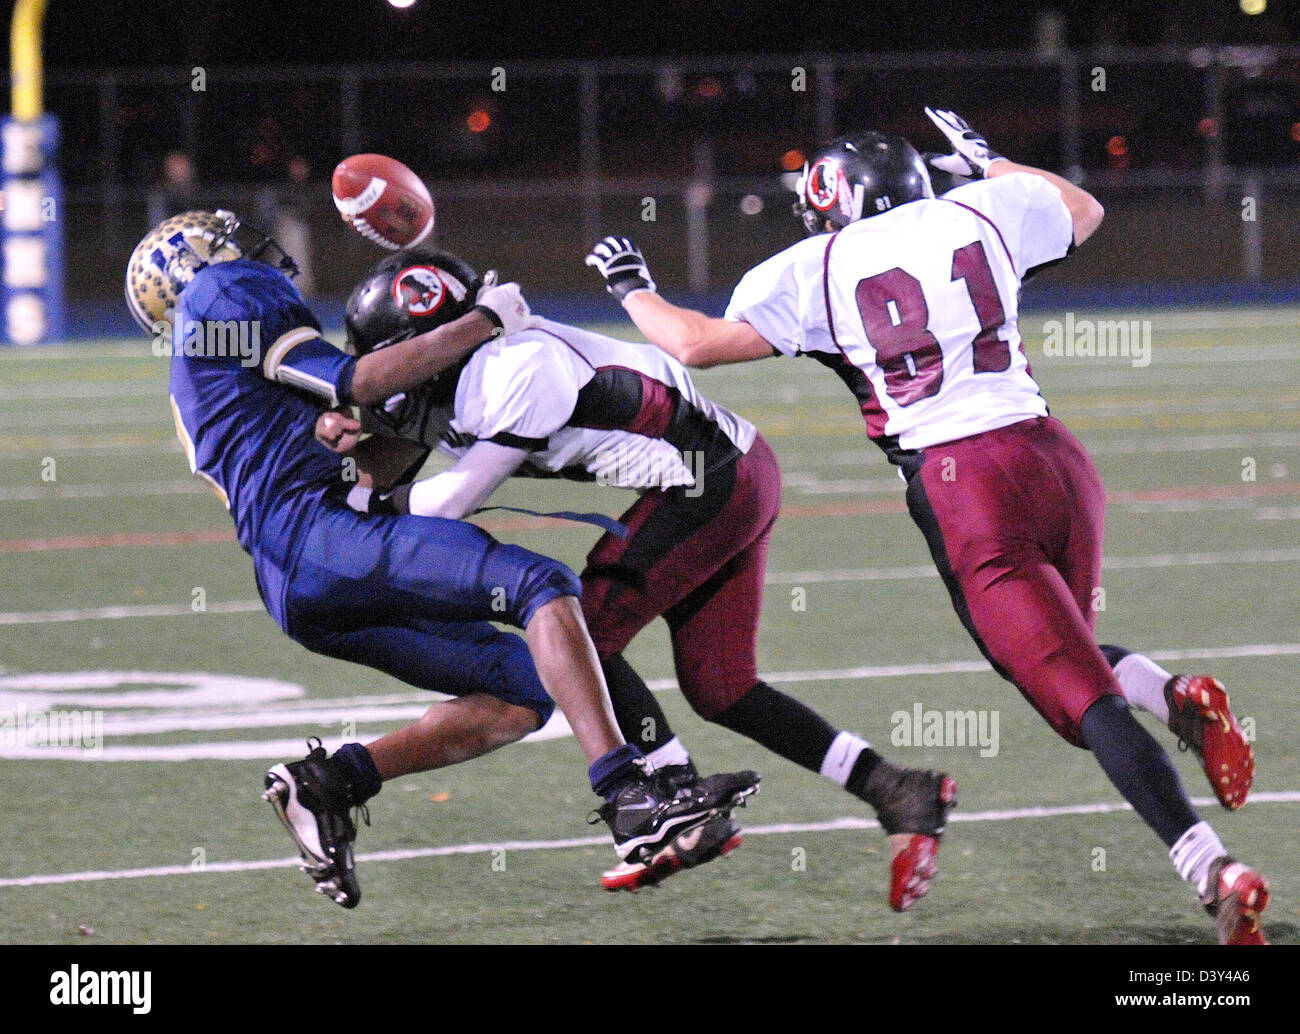 Hard hit during a High school football action in CT USA - Stock Image